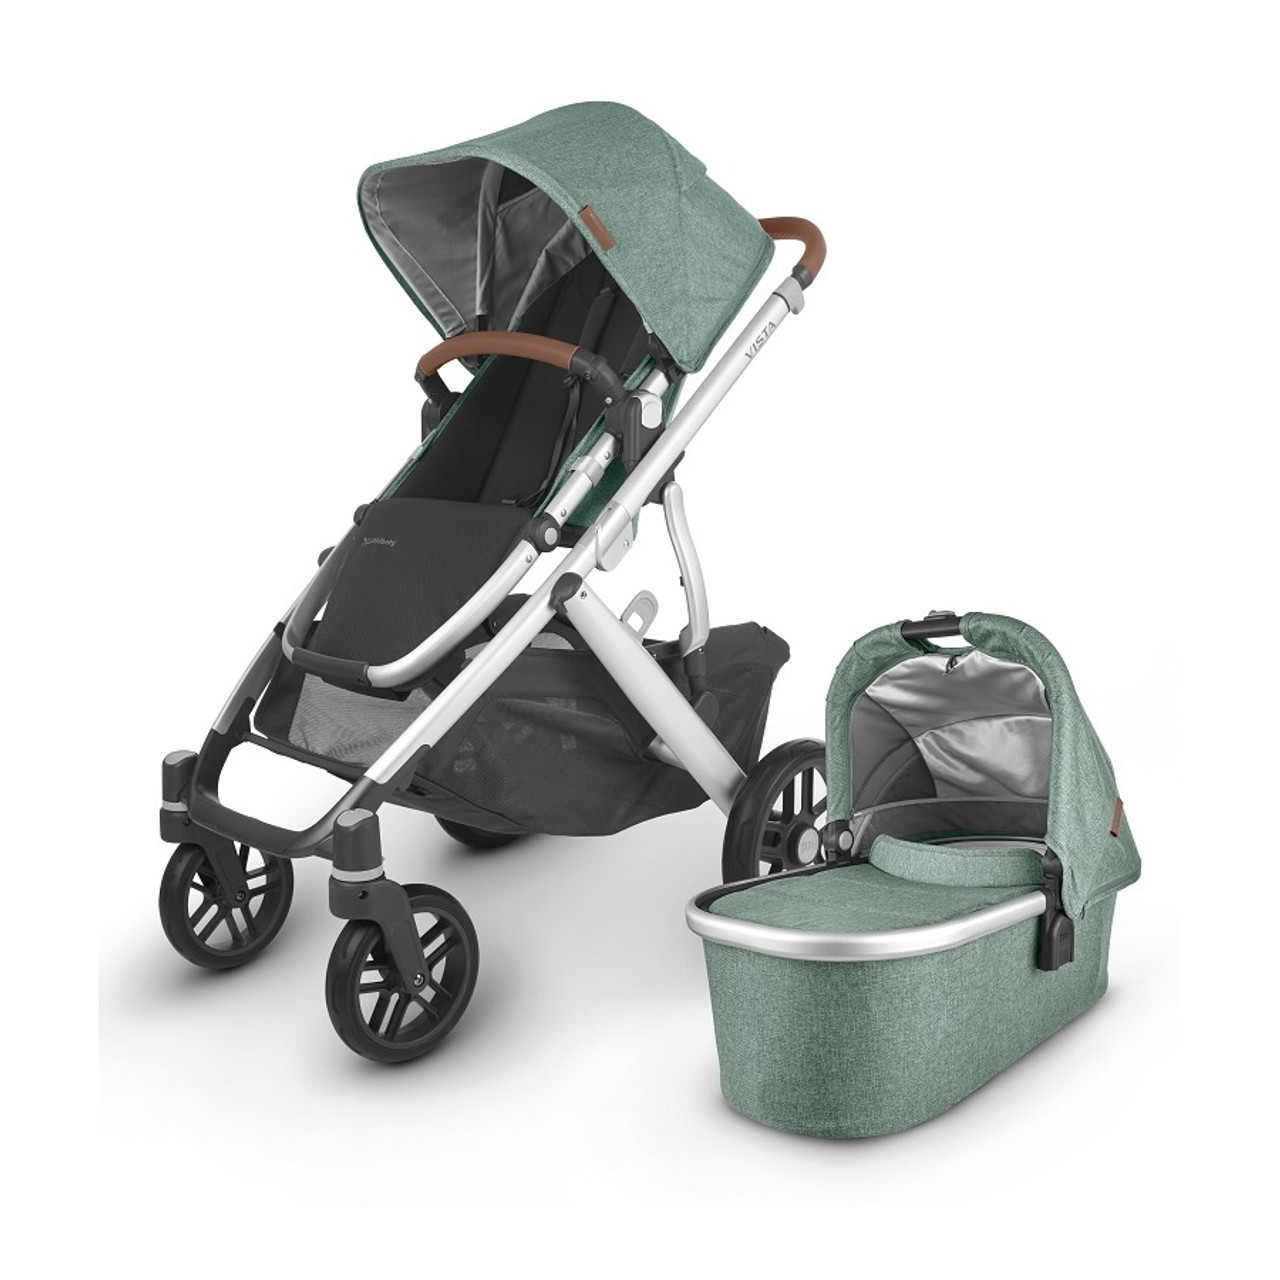 Vista V2 has multi position allows your little one to take naps lie down, or upright.